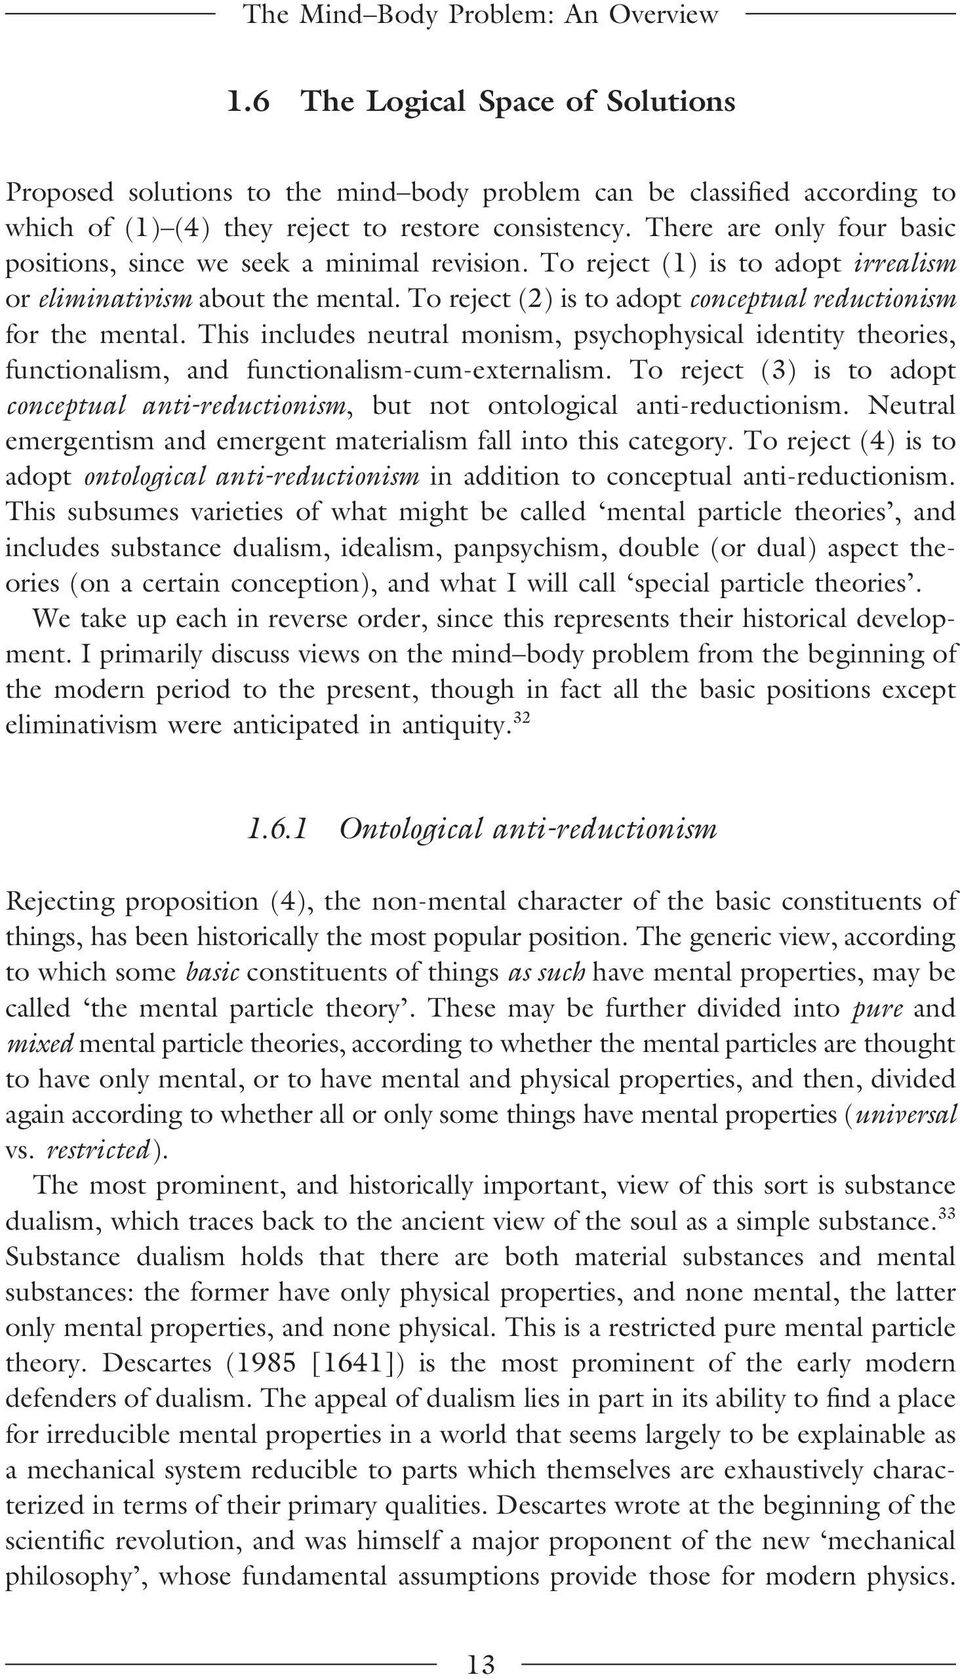 To reject (2) is to adopt conceptual reductionism for the mental. This includes neutral monism, psychophysical identity theories, functionalism, and functionalism-cum-externalism.